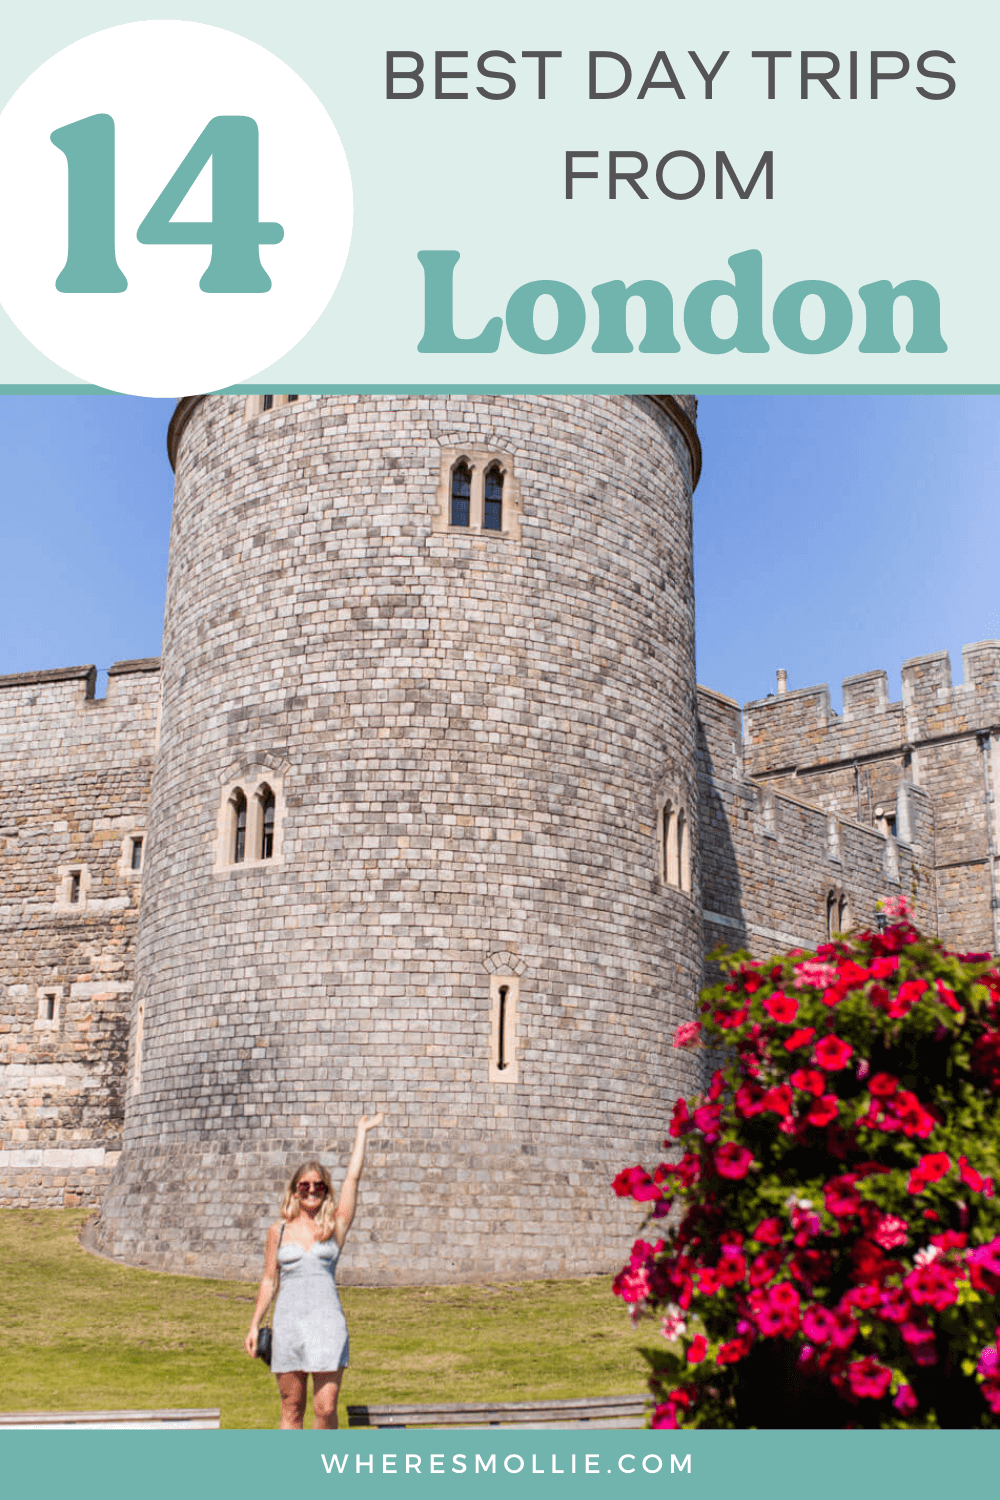 The best day trips from London, UK